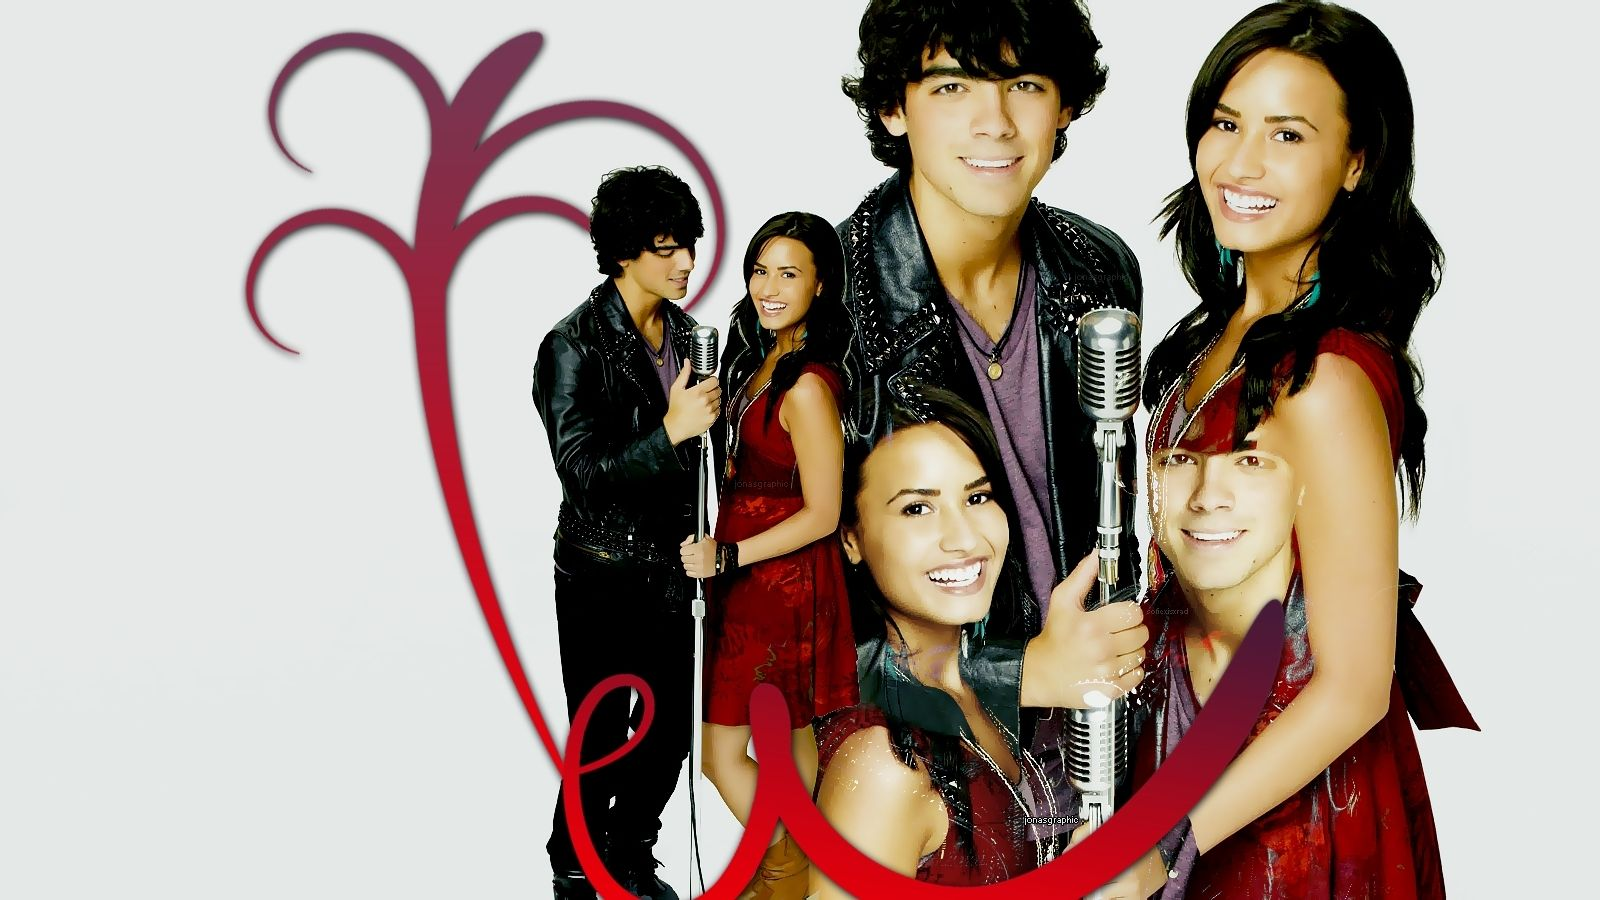 Camp Rock 2 Wallpaper Camp Rock 2 Free Movies Online Full Movies Online Free Kate Micucci